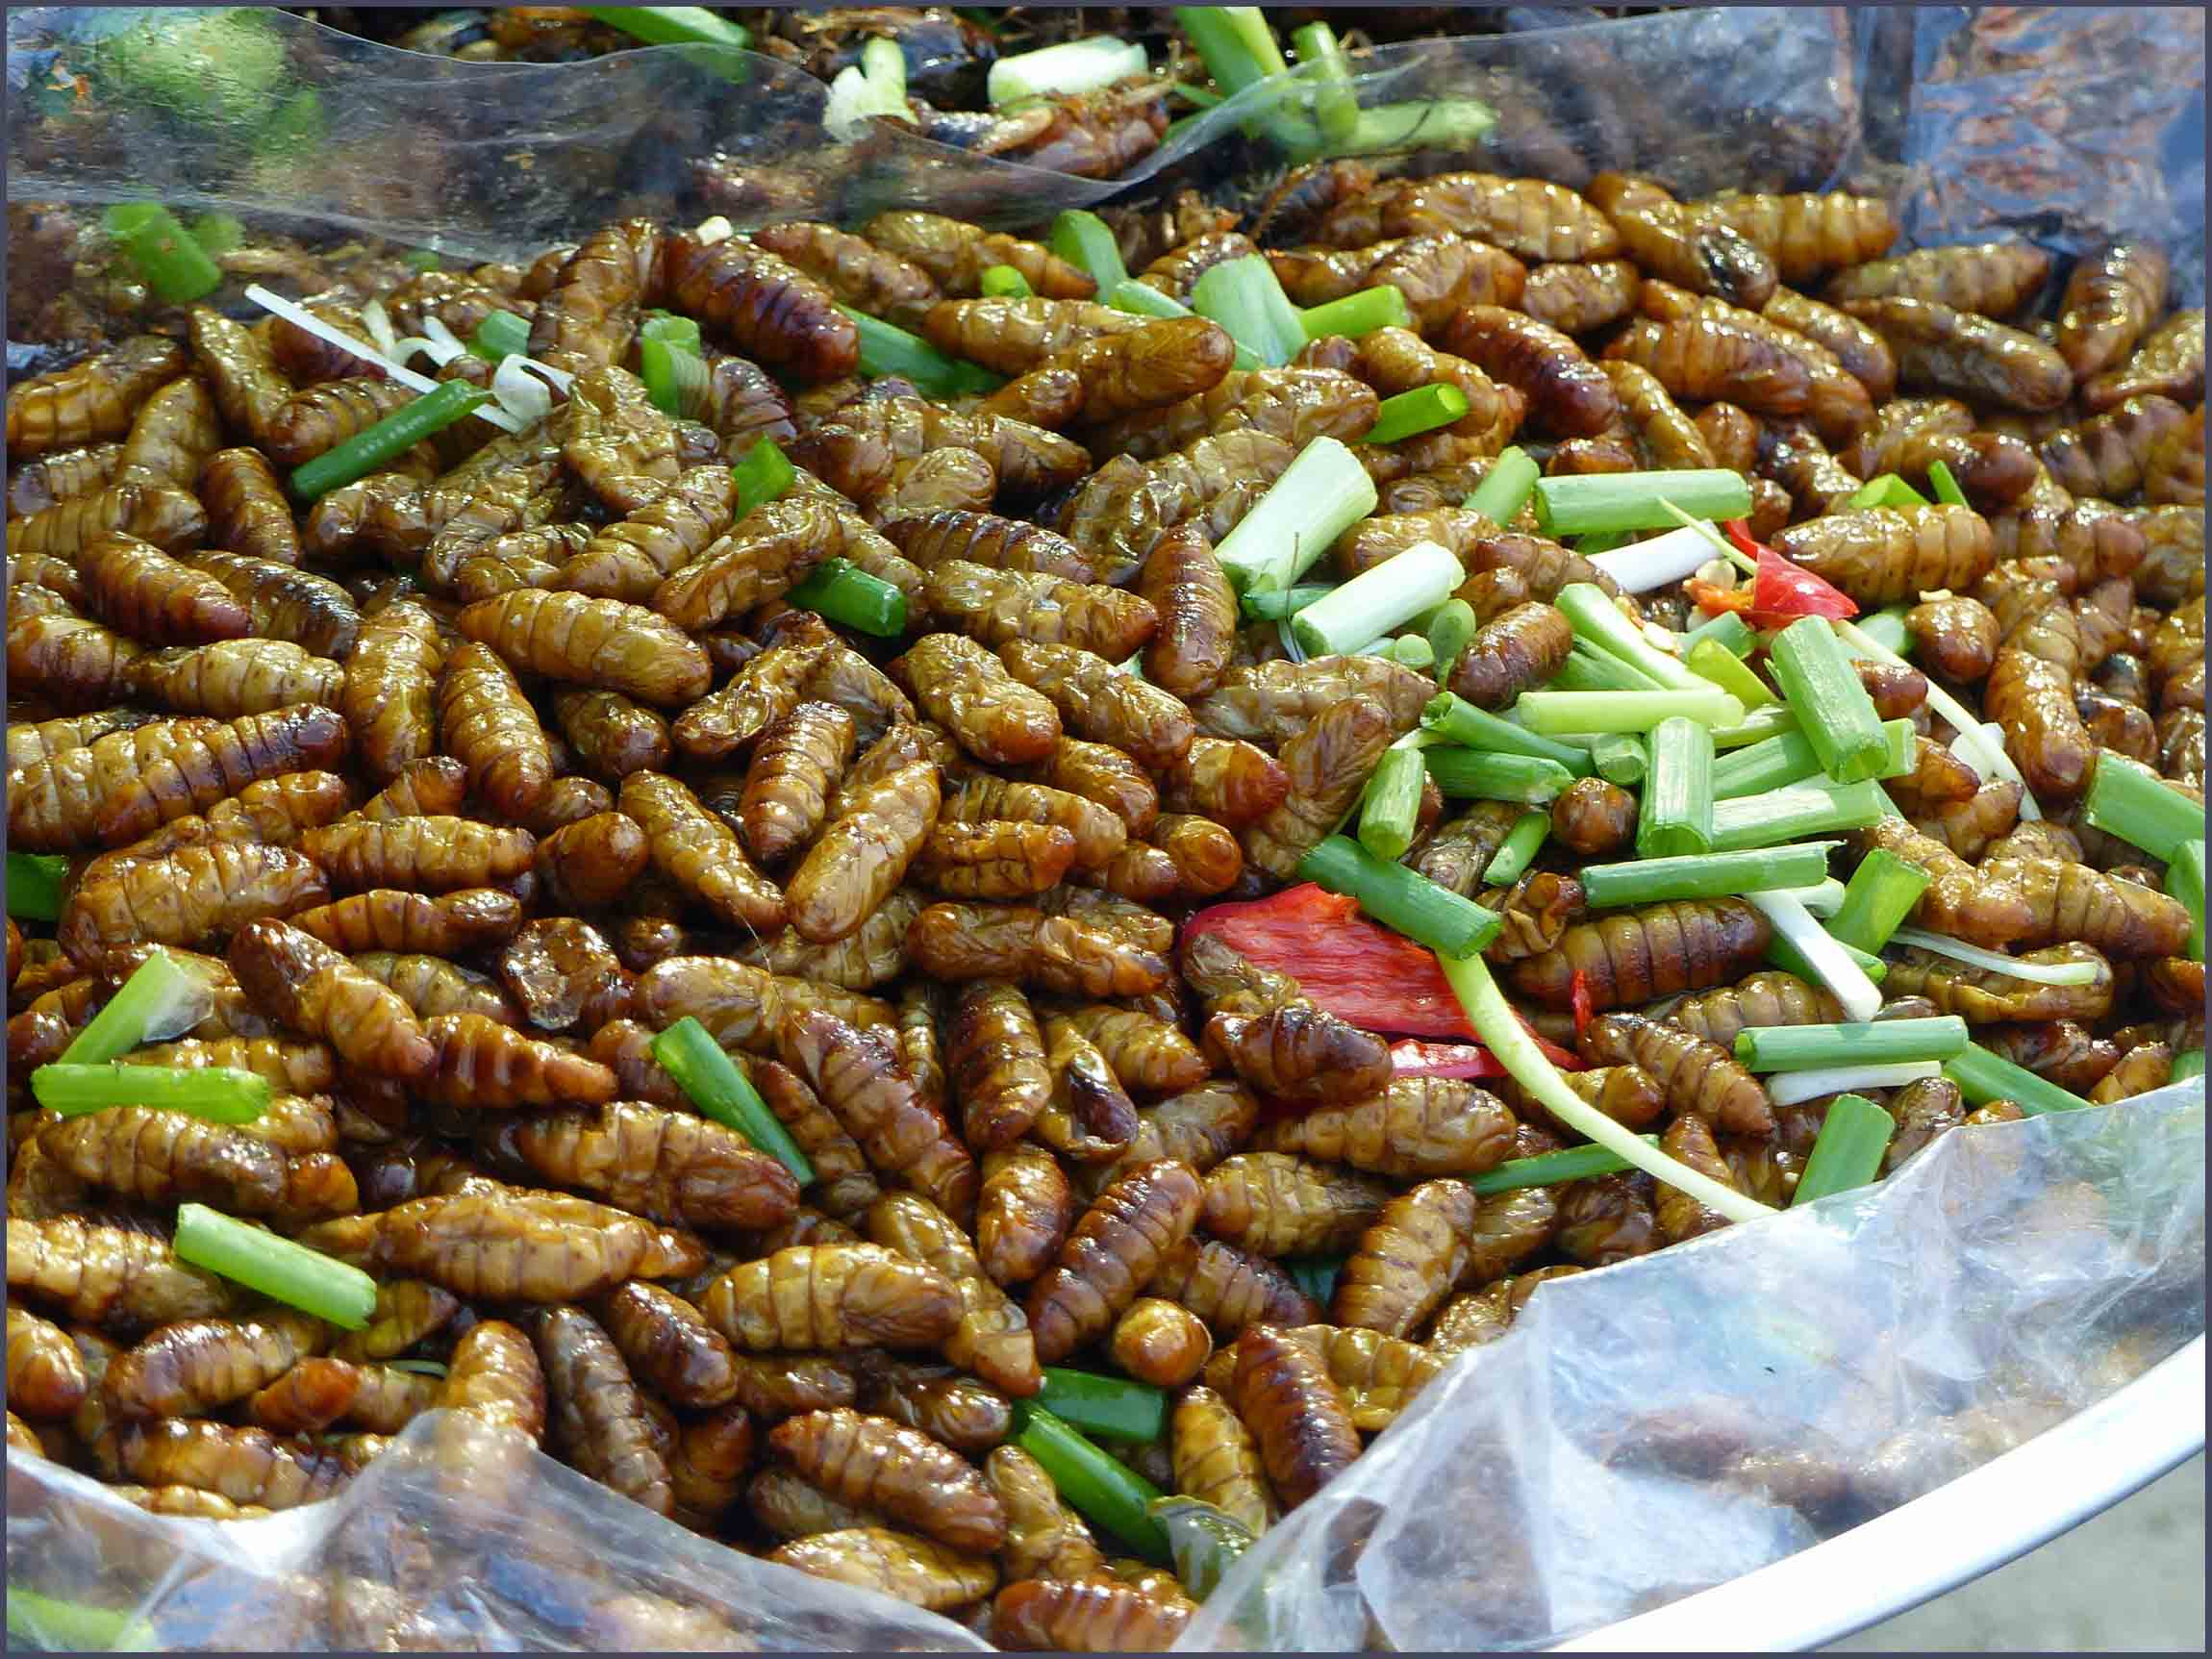 Bag of fried cocoons